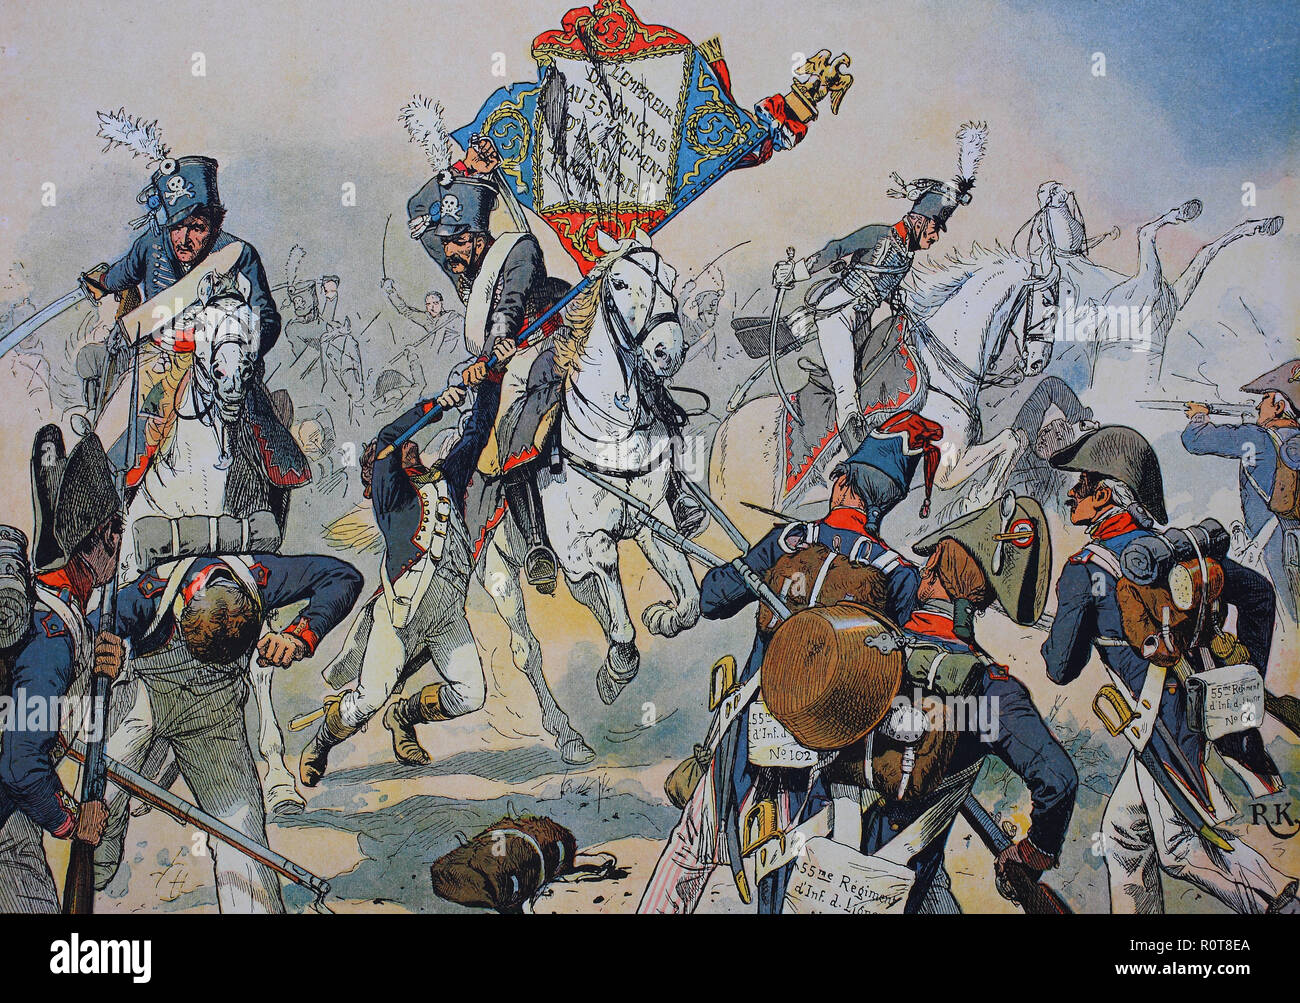 Digital improved reproduction, The Battle of Heilsberg, took place on 10 June 1807, during the Napoleonic Wars, Heilsberg, East Prussia - Stock Image